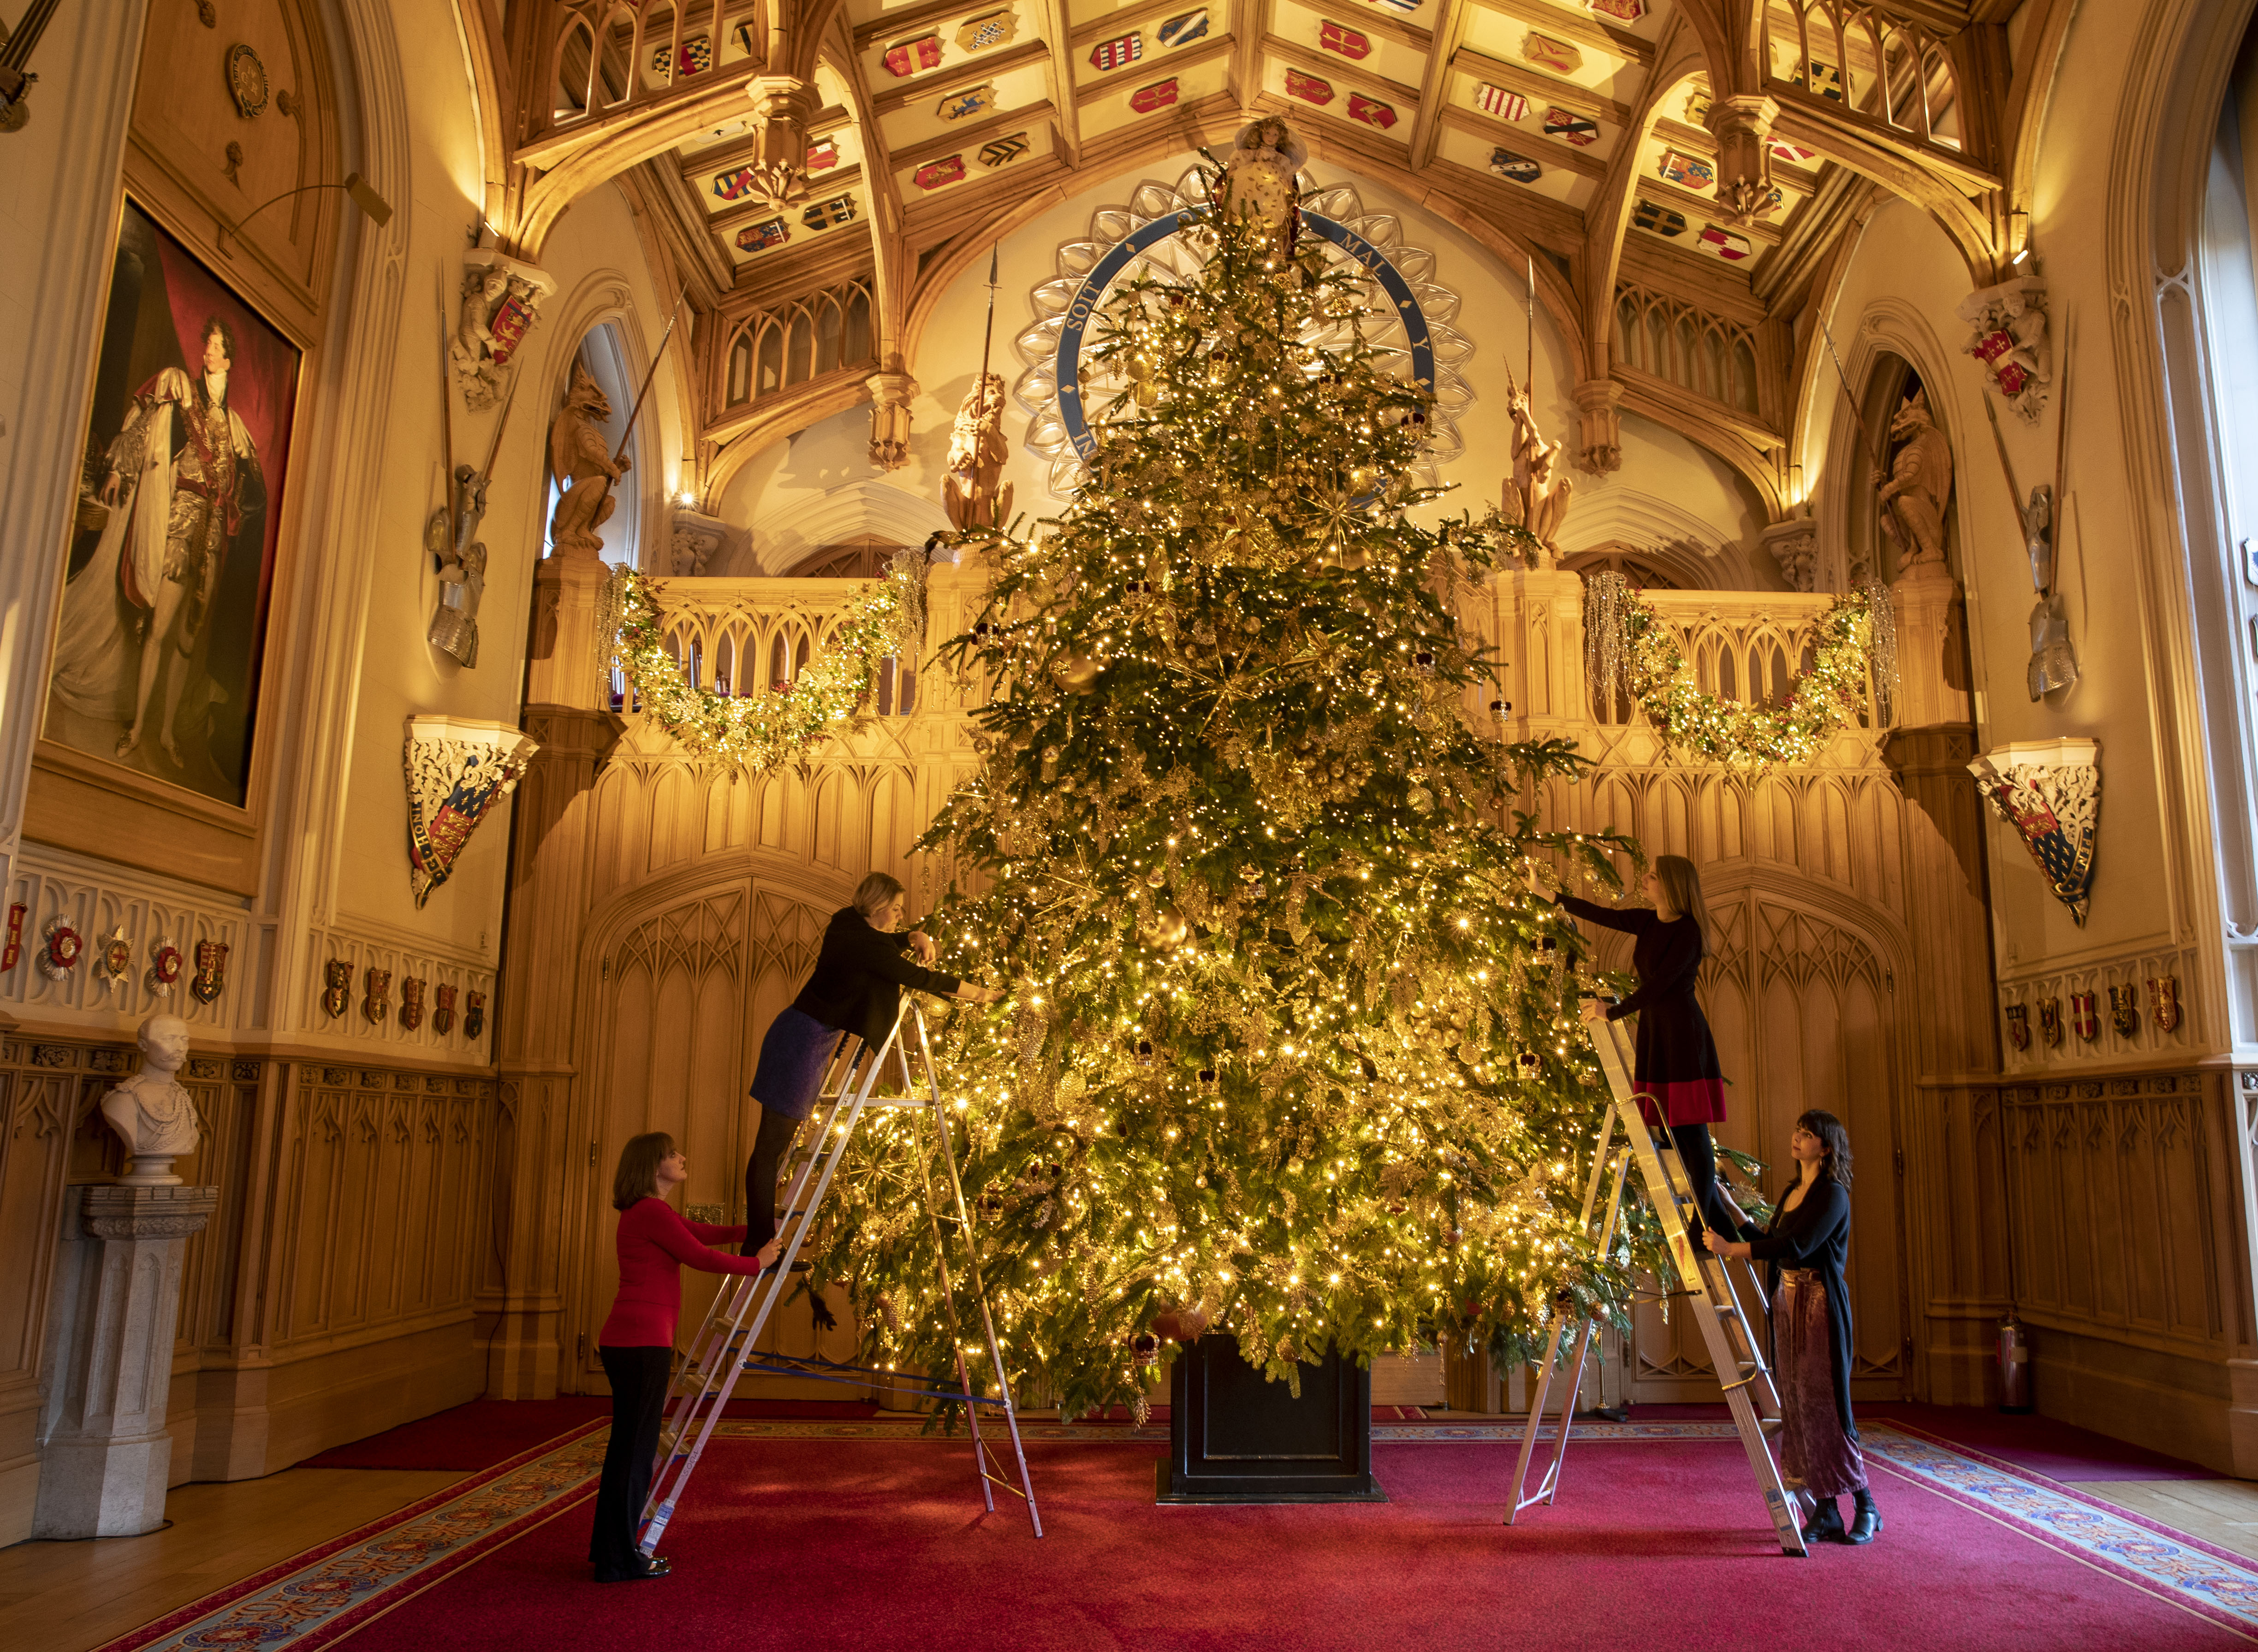 Final preparations are made to a 20ft Norman Fir Christmas tree in St George's Hall at Windsor Castle, Berkshire, which is being decorated for Christmas. (Photo by Steve Parsons/PA Images via Getty Images)